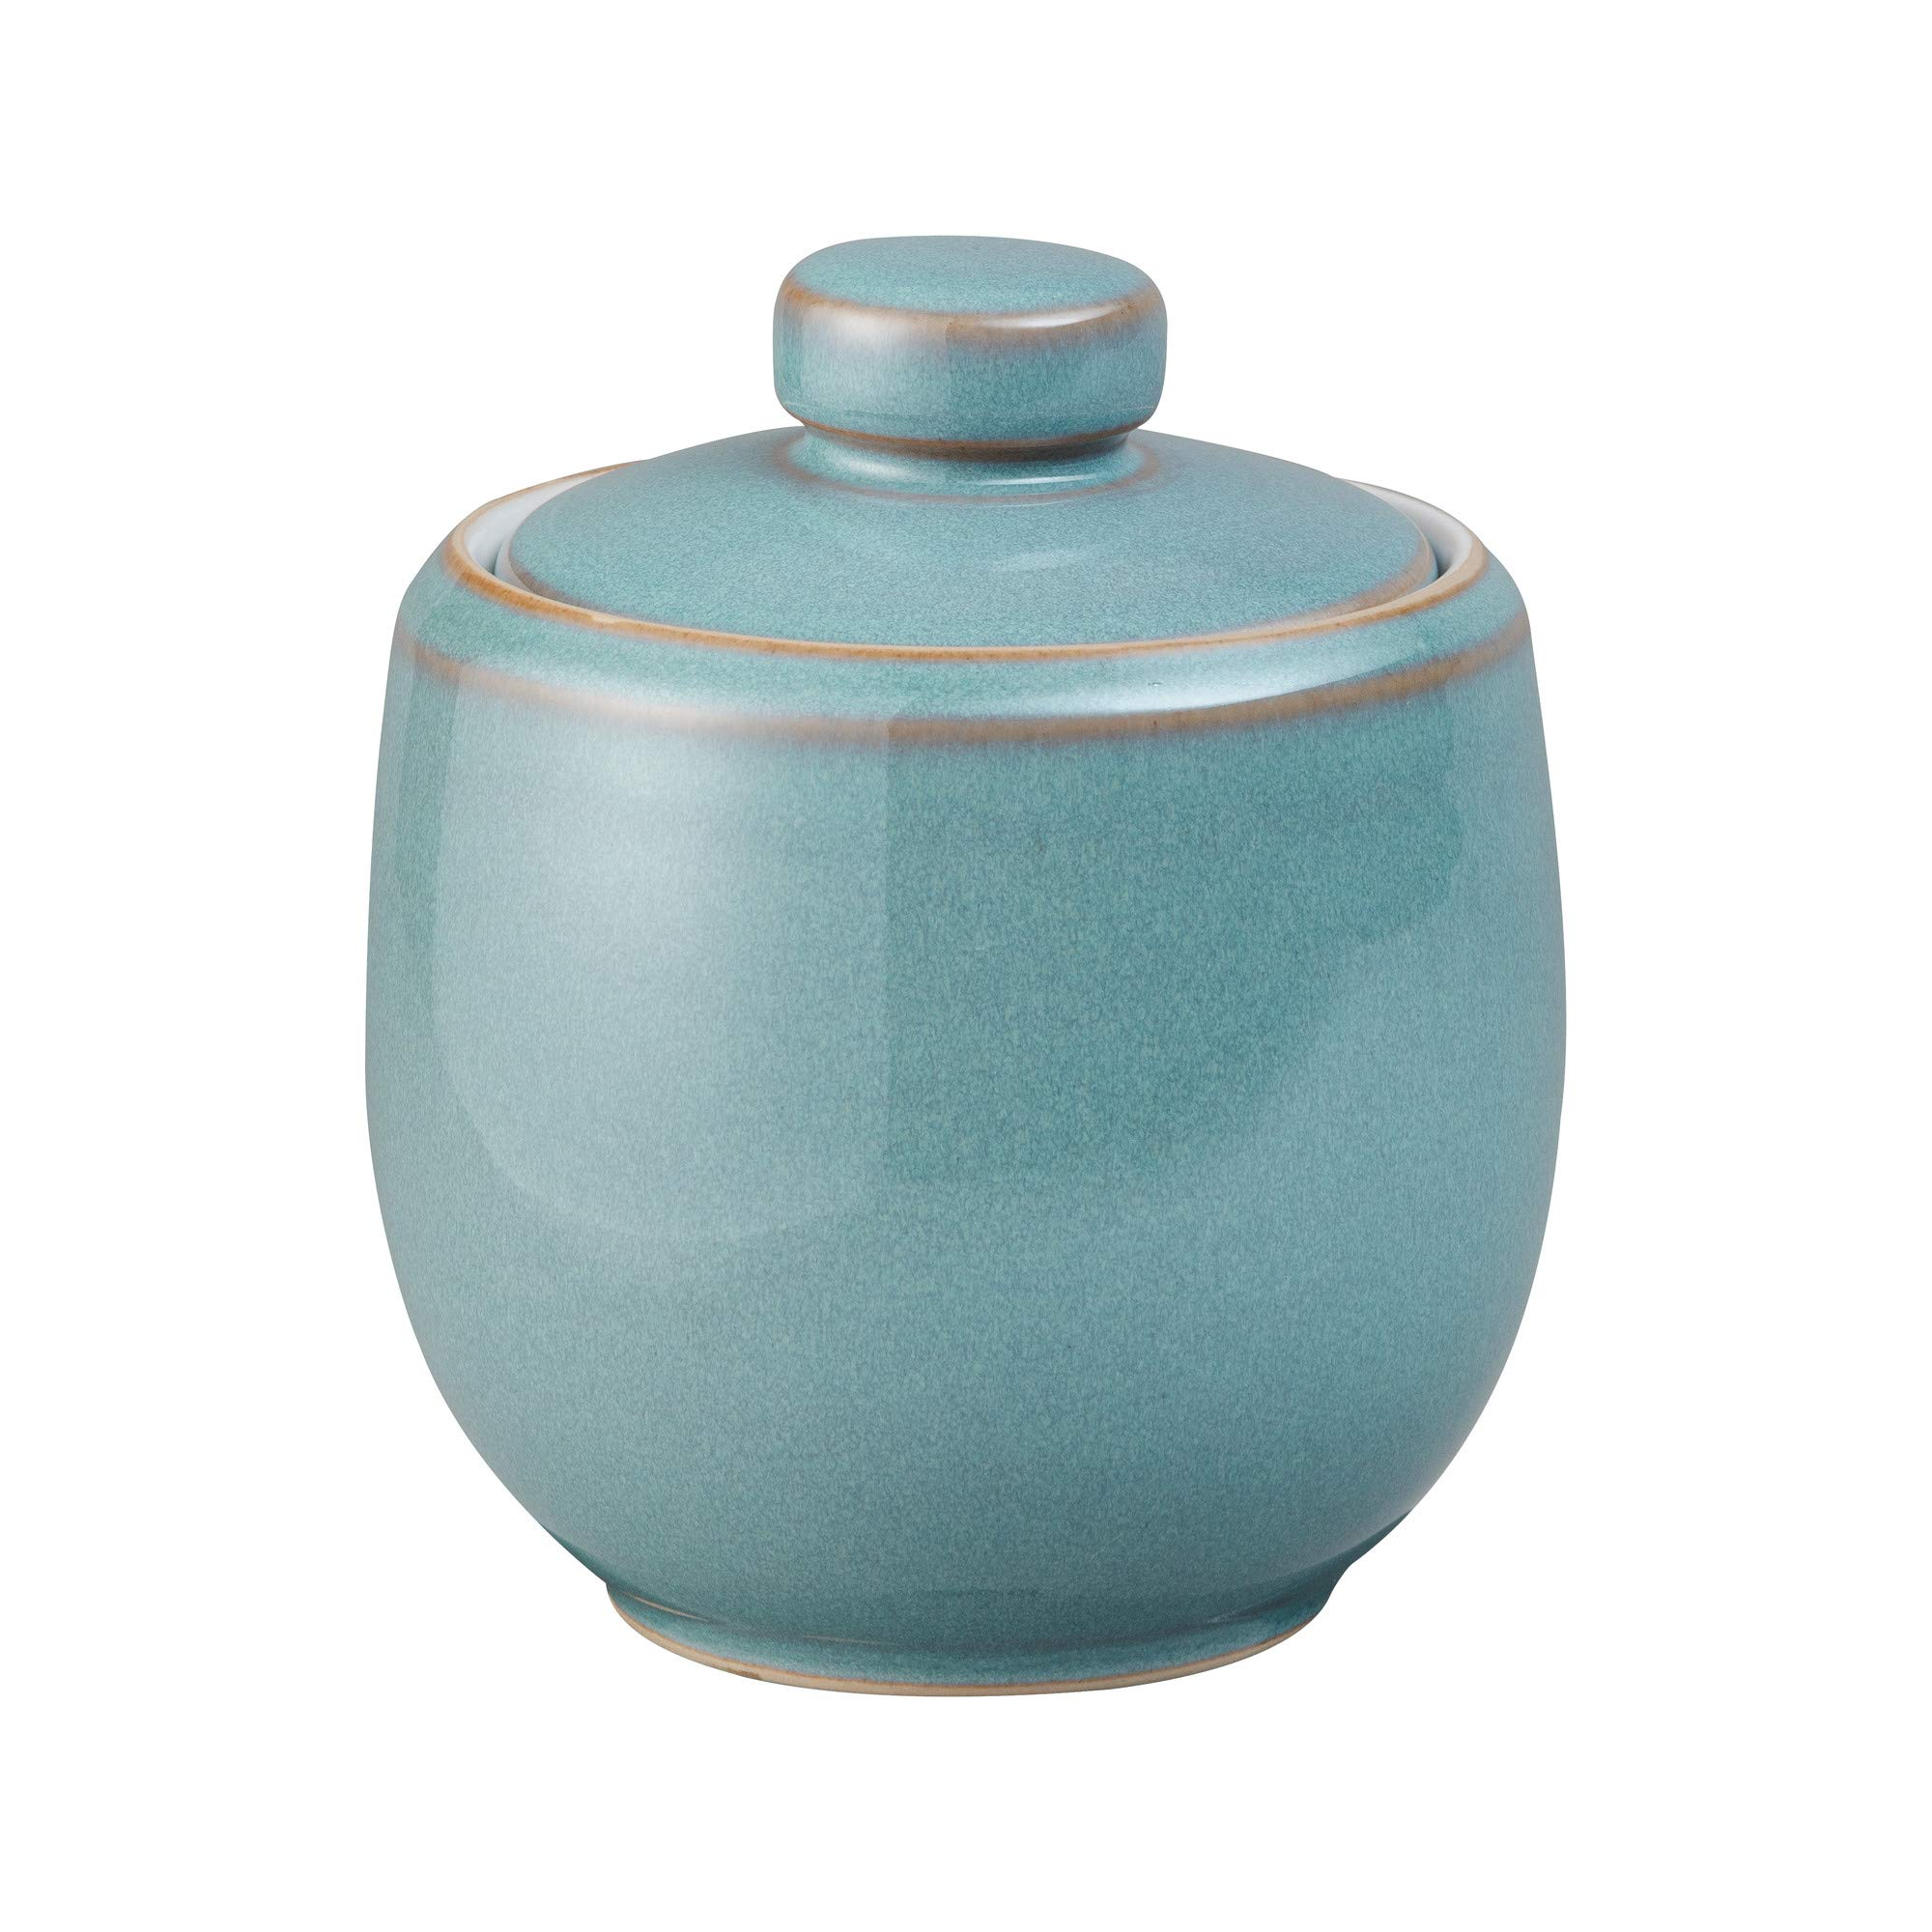 Denby Azure Covered Sugar